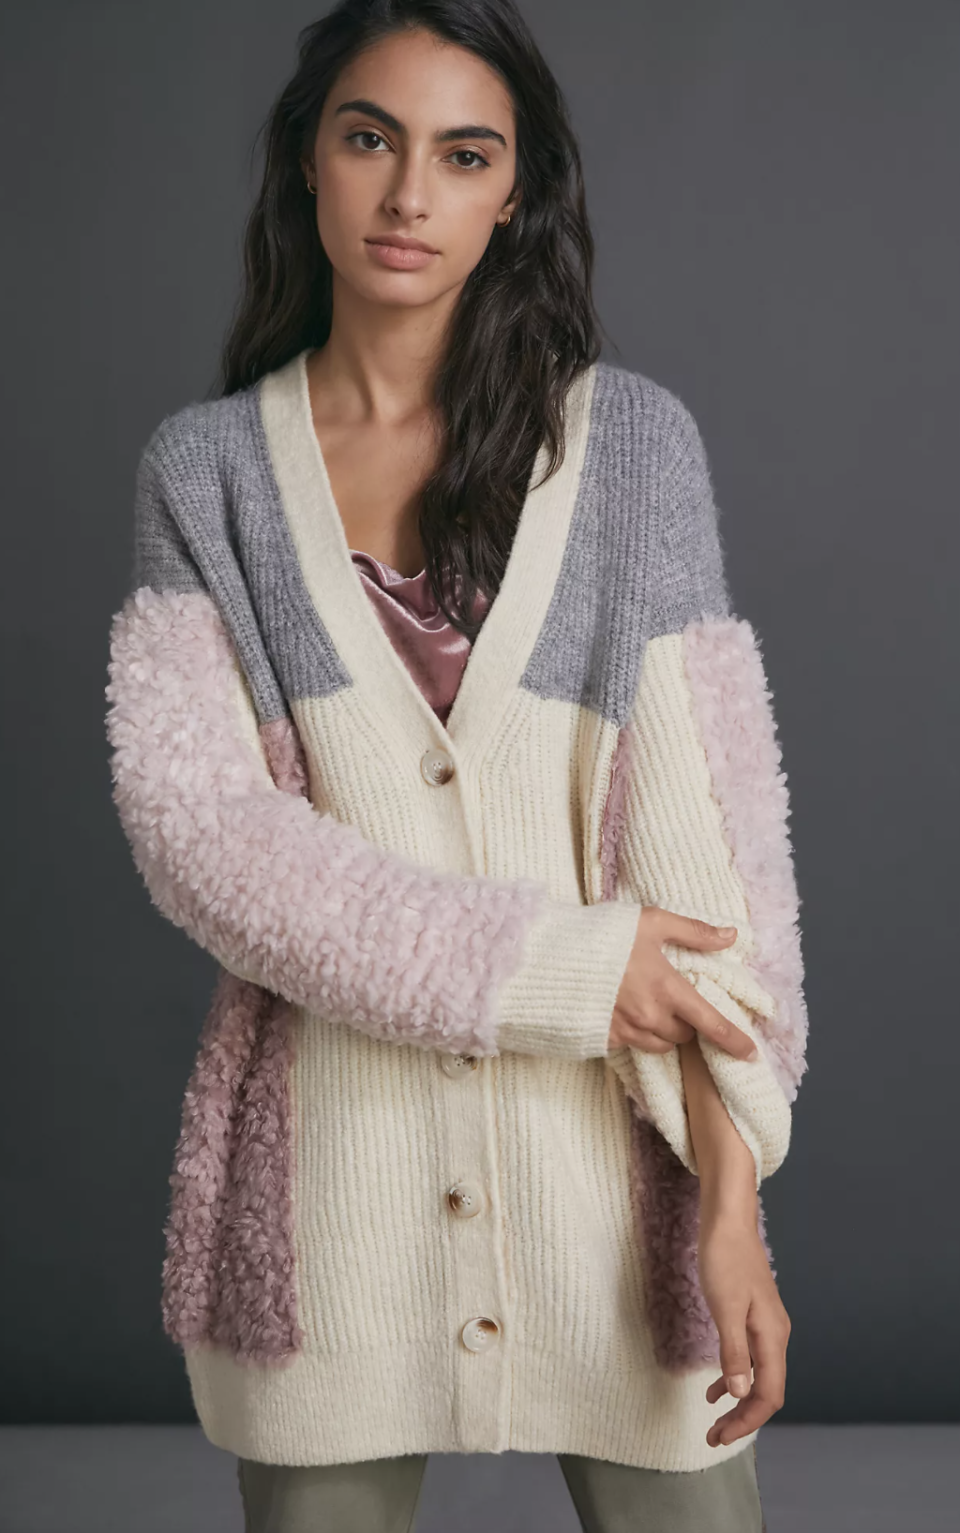 Olivia Textured Cardigan - Anthropologie, $100 (originally  $158)